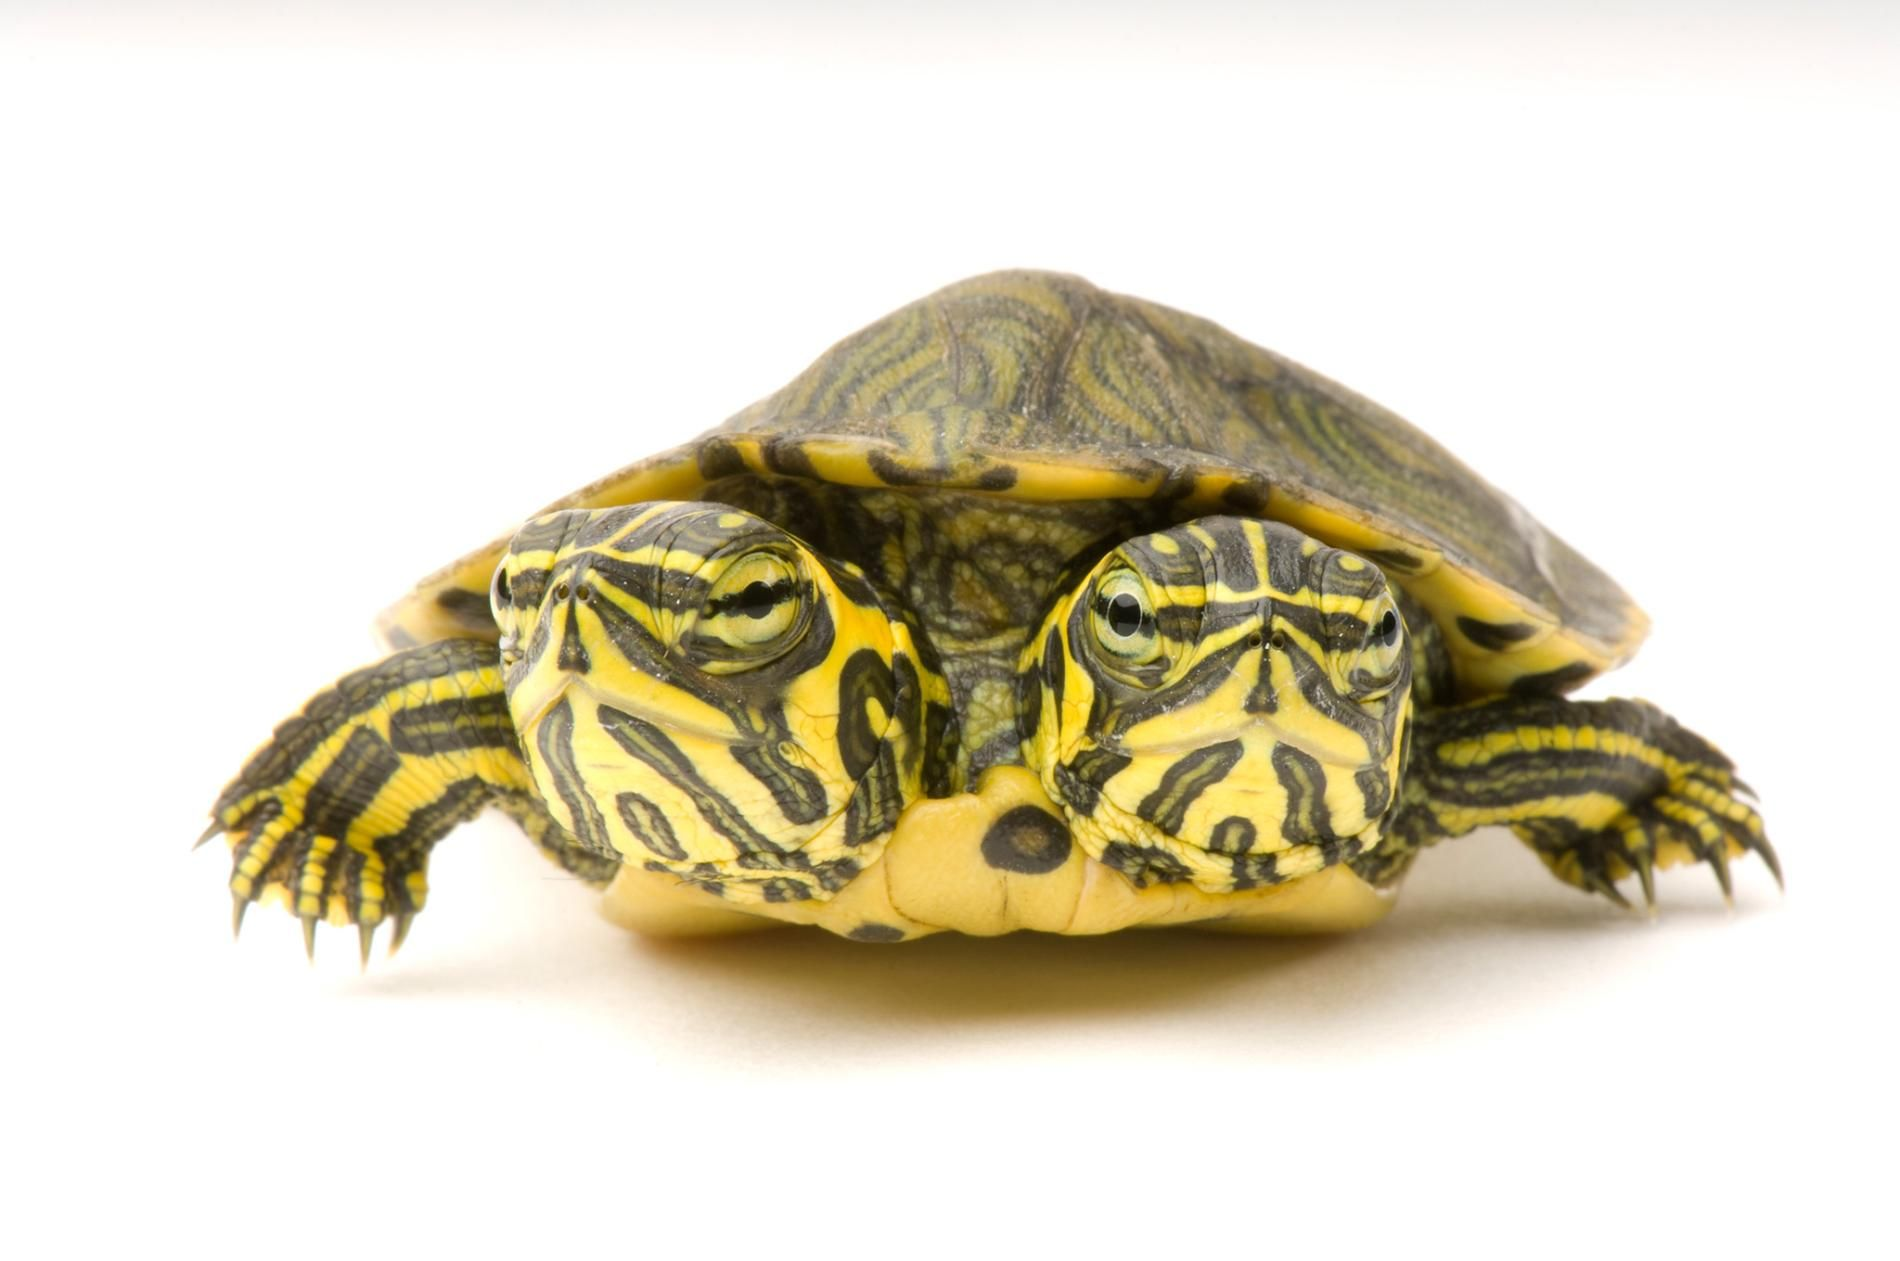 17 Surprisingly Cute Photos Of Turtles Yellow Bellied Slider